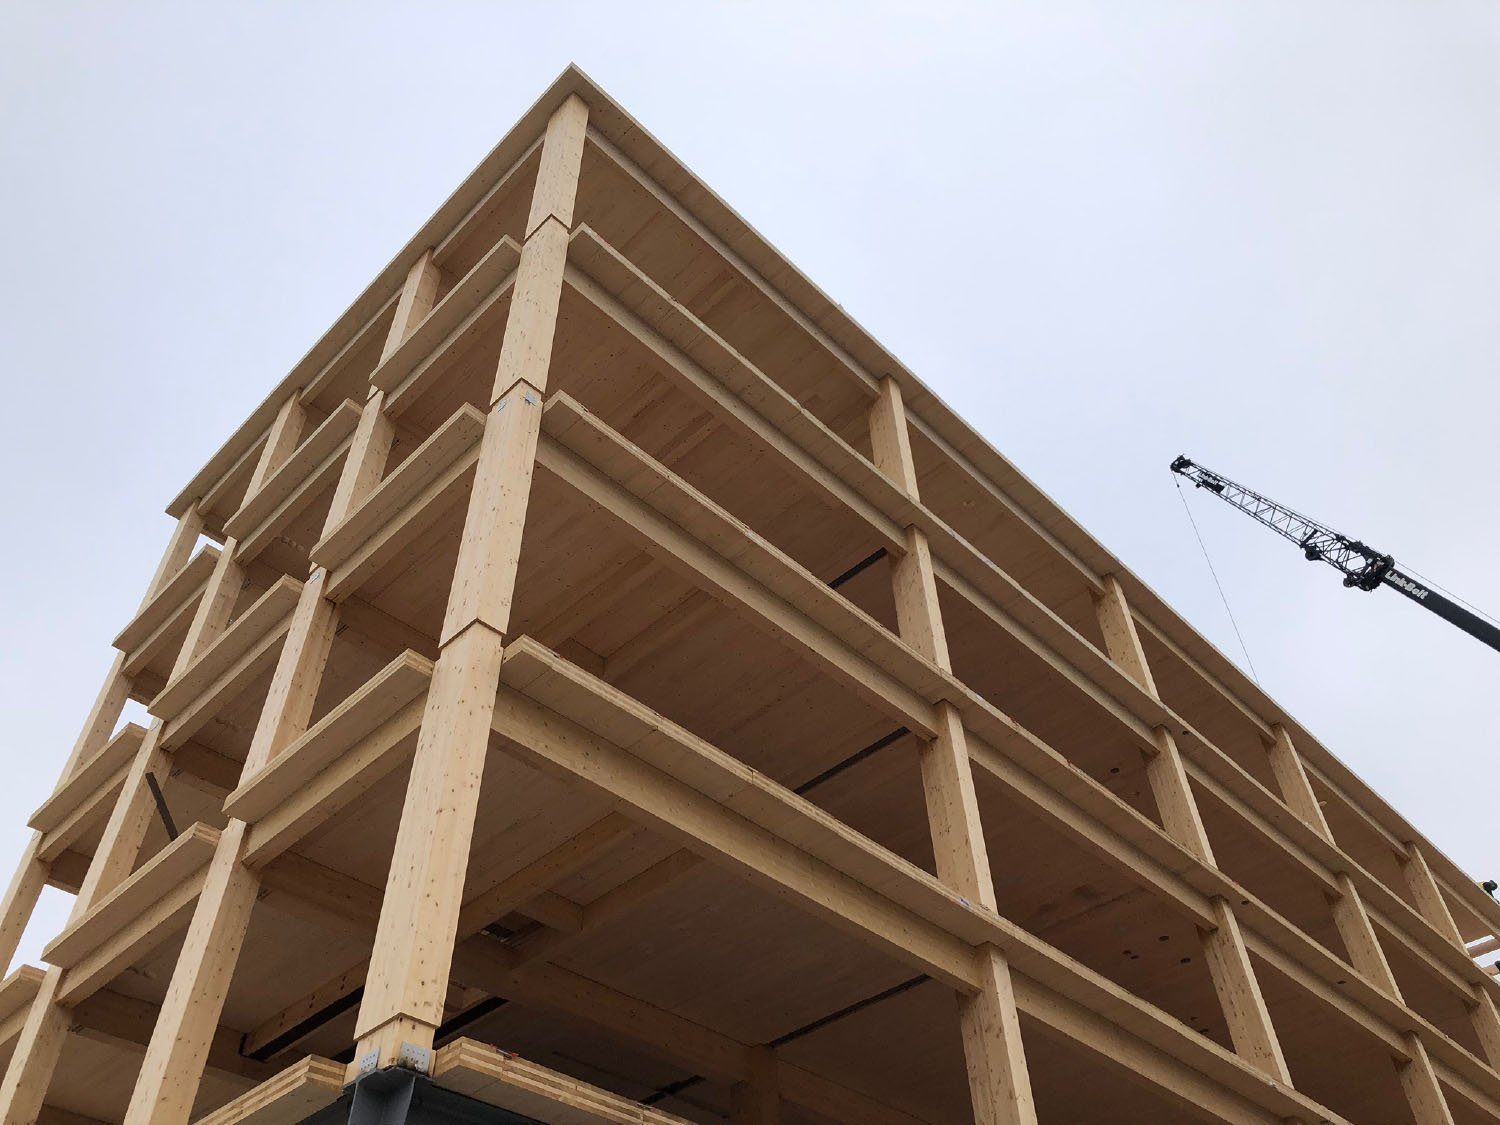 Construction Photo Showing Timber Structure Leers Weinzapfel Associates}